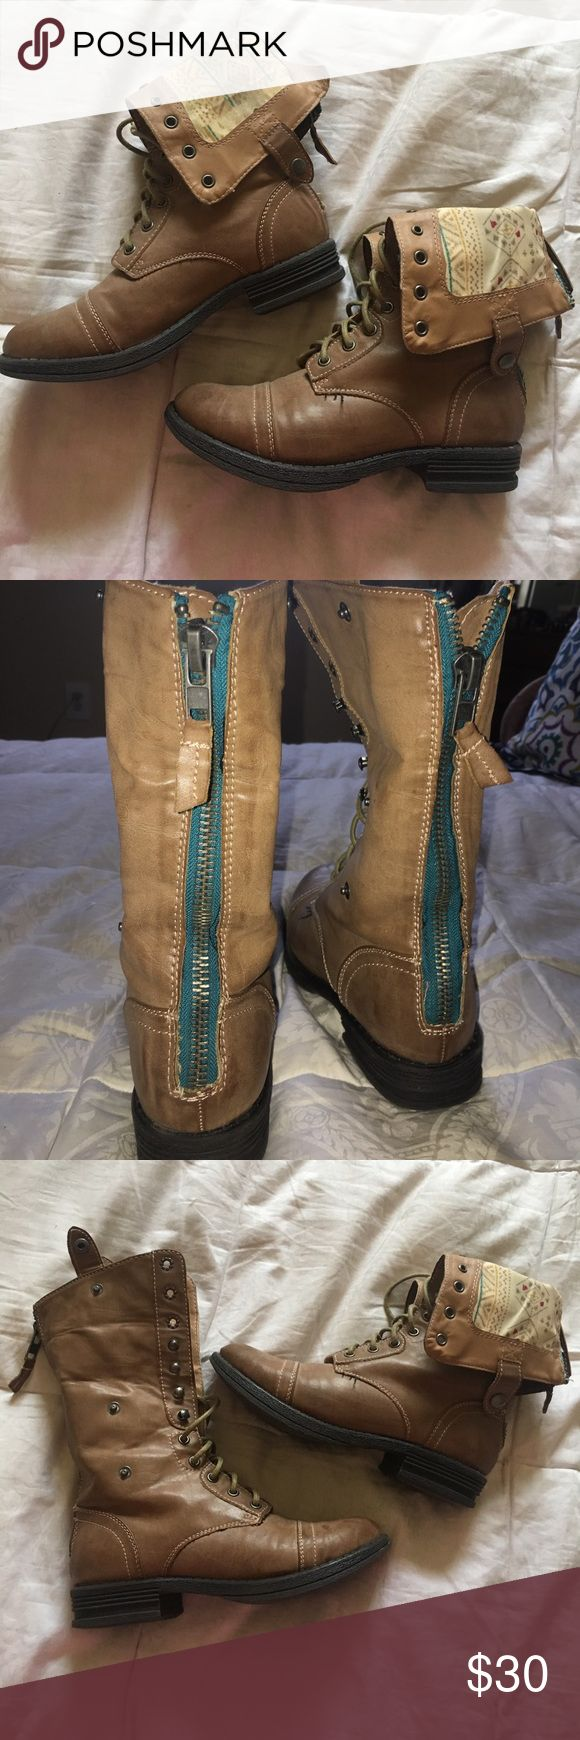 Cute combat boots Cute tan/brown combat boots. Small heel. Lace up all the way. Or can fold them down and button them. Inside pattern seen when folded down. Round toe. Not worn a lot. Madden Girl Shoes Combat & Moto Boots